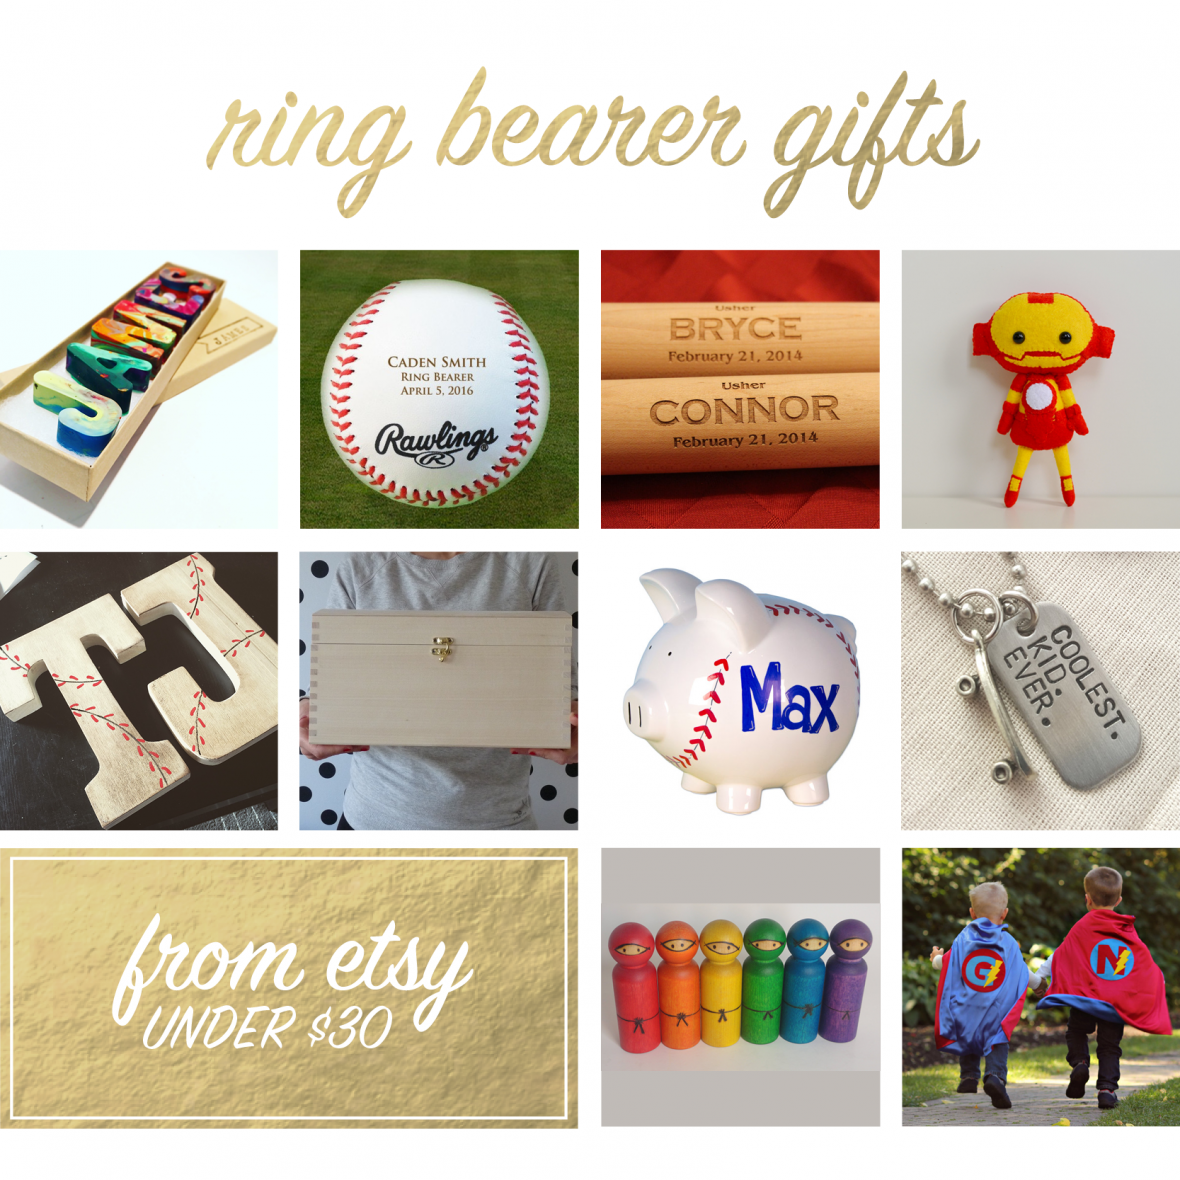 Handmade Gifts for Ring Bearers from Etsy